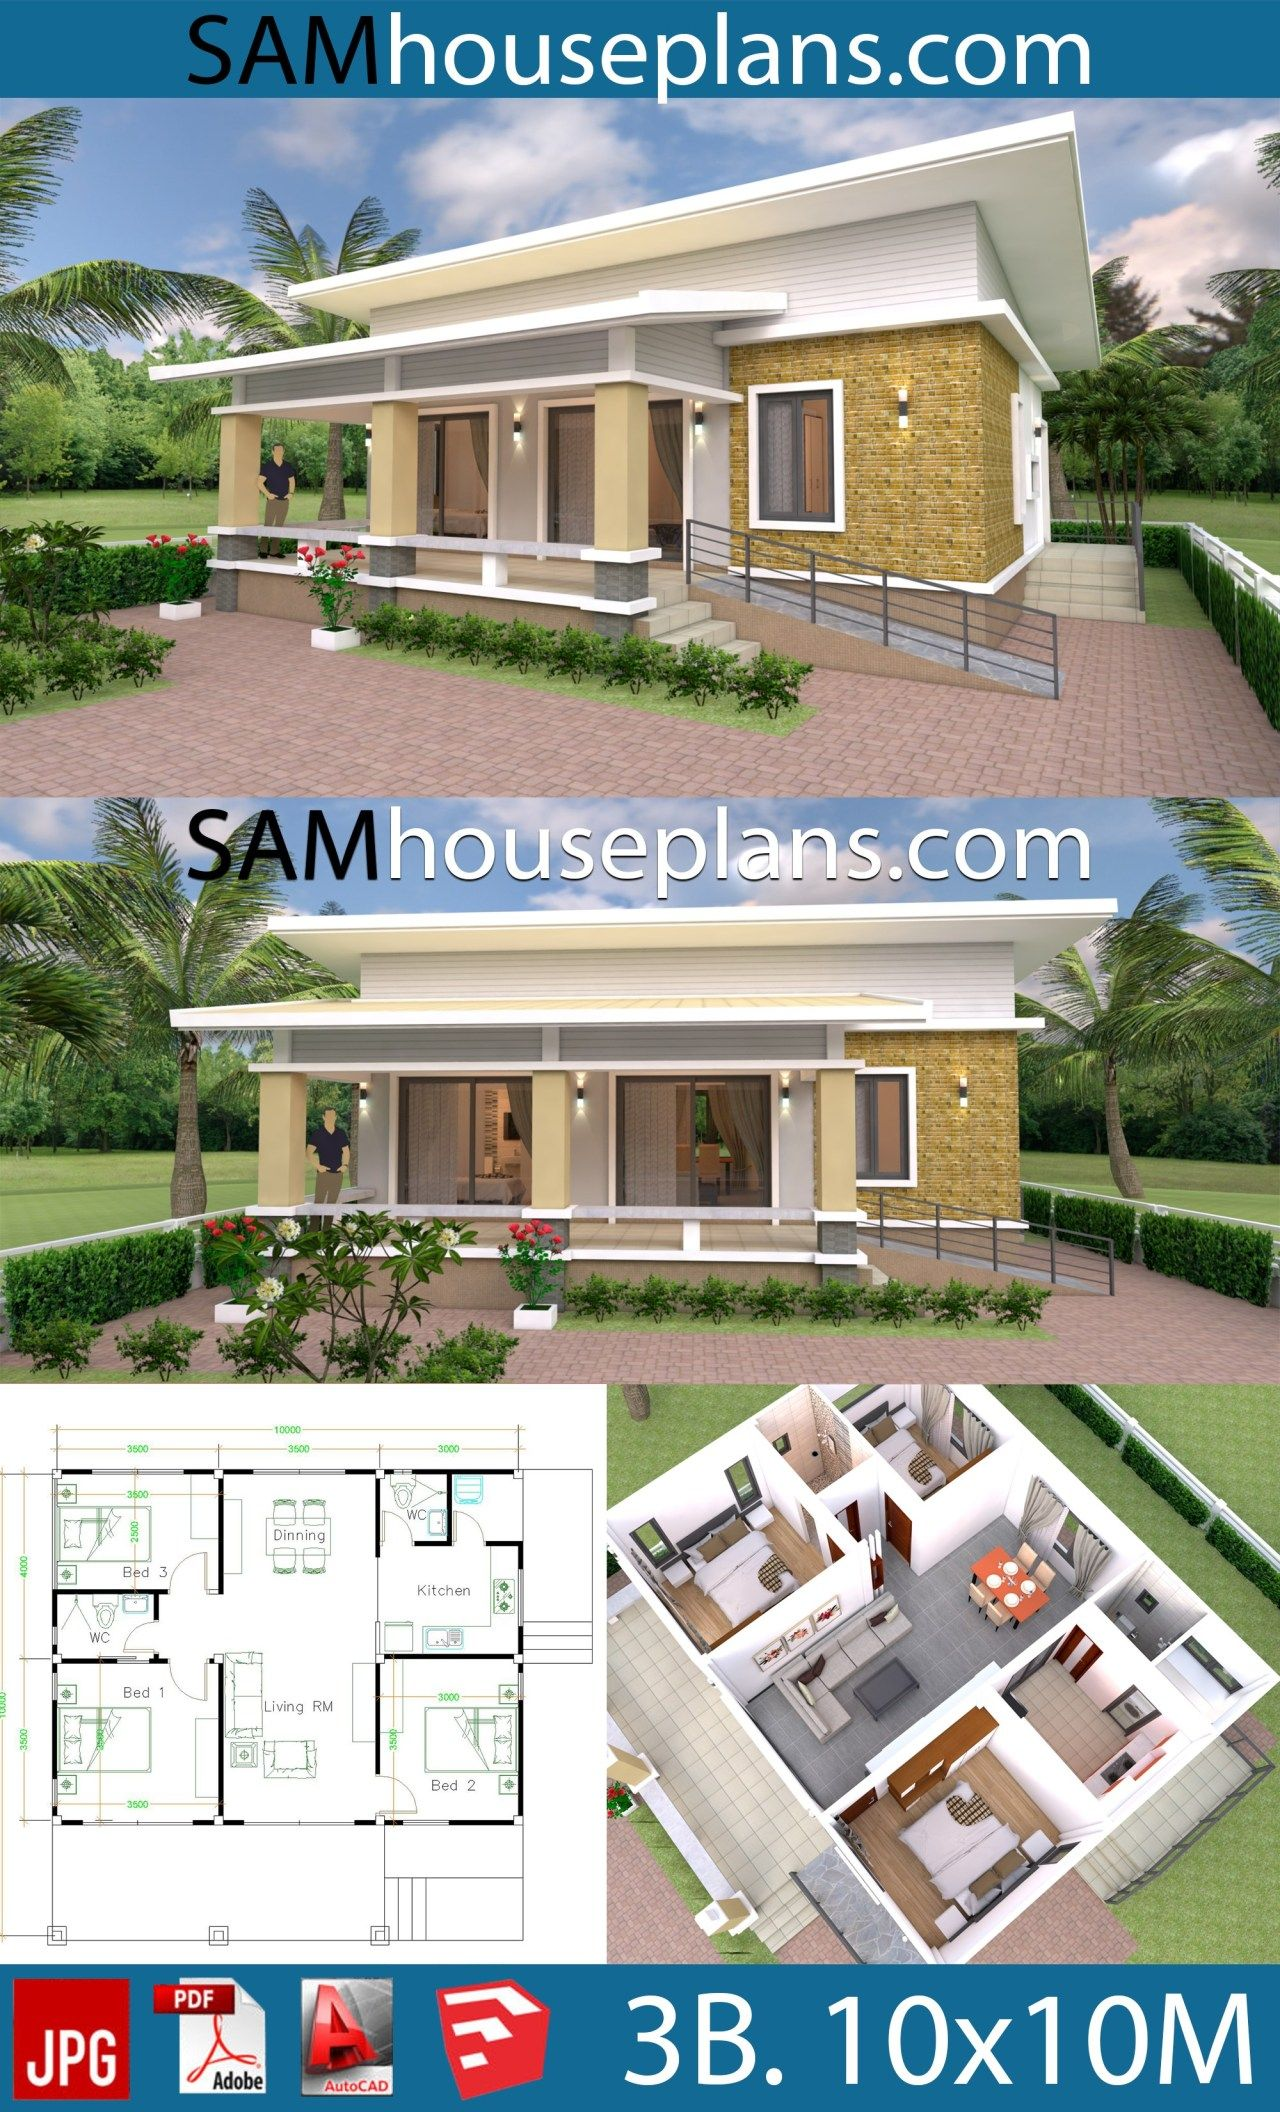 Best House Design Plans 10X10 With 3 Bedrooms Full Interior ใน 640 x 480